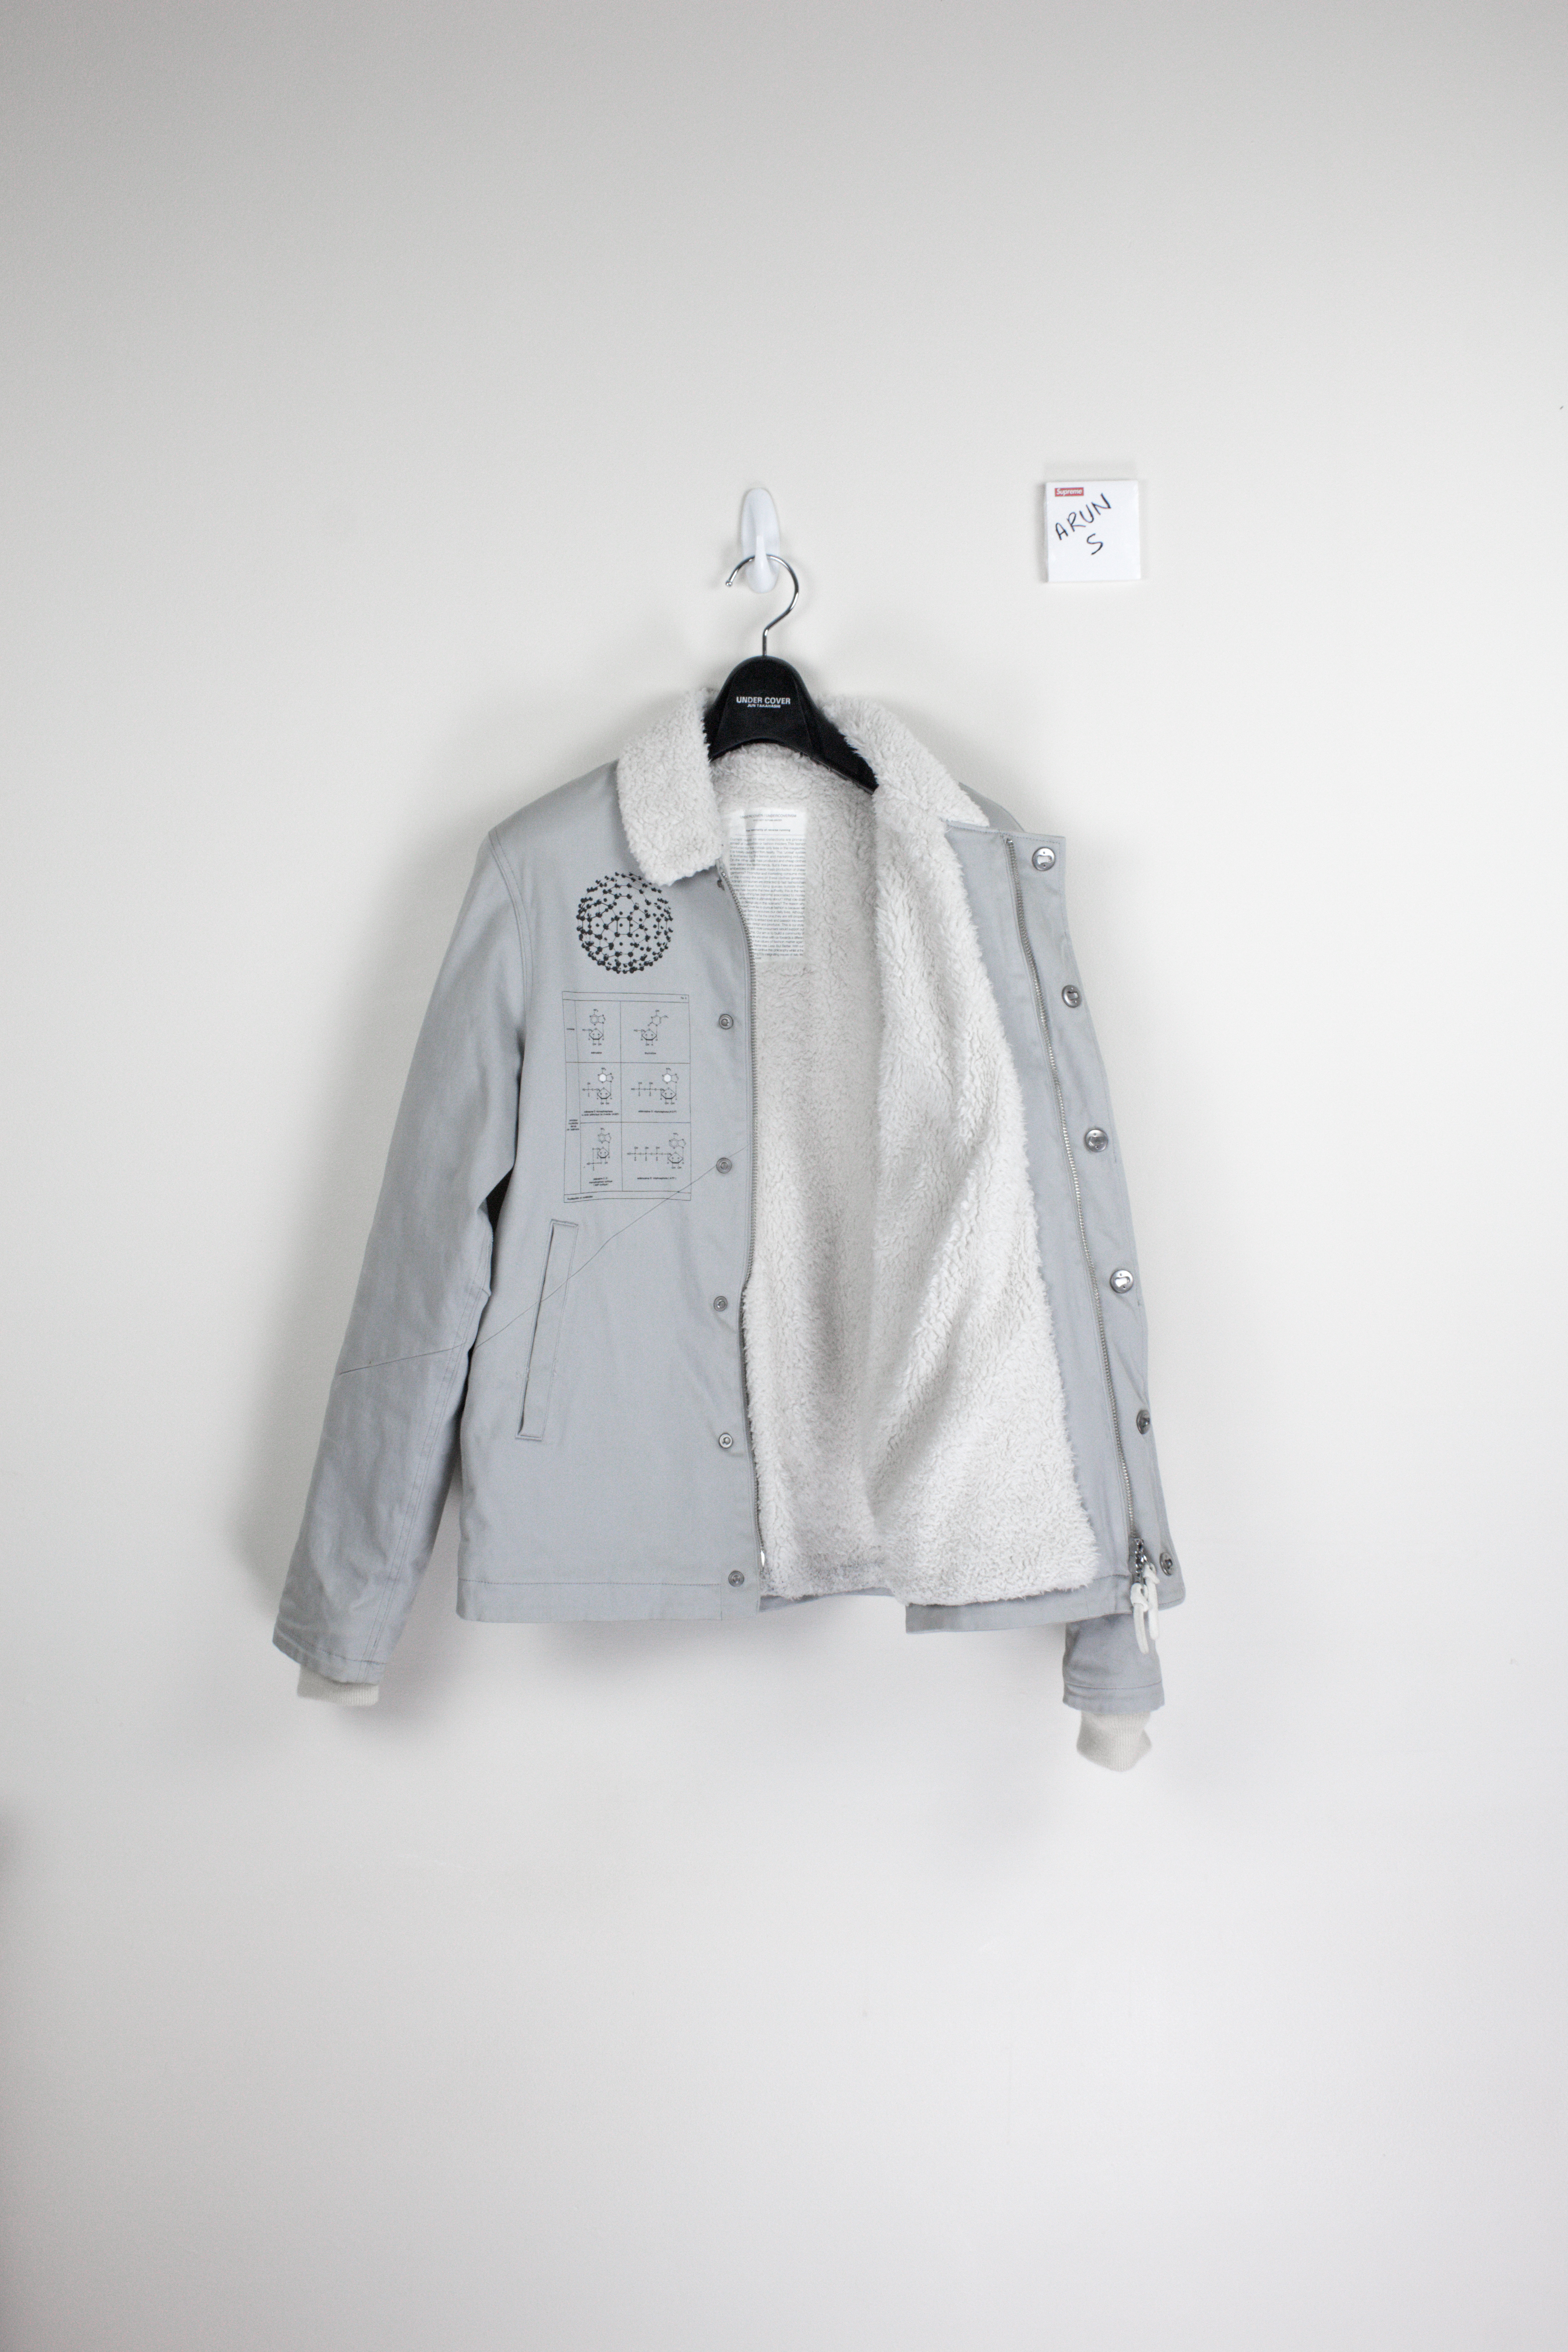 a5388b6269d Undercover 10AW FAux Shearling Chemistry Jacket Size m - Light Jackets for  Sale - Grailed